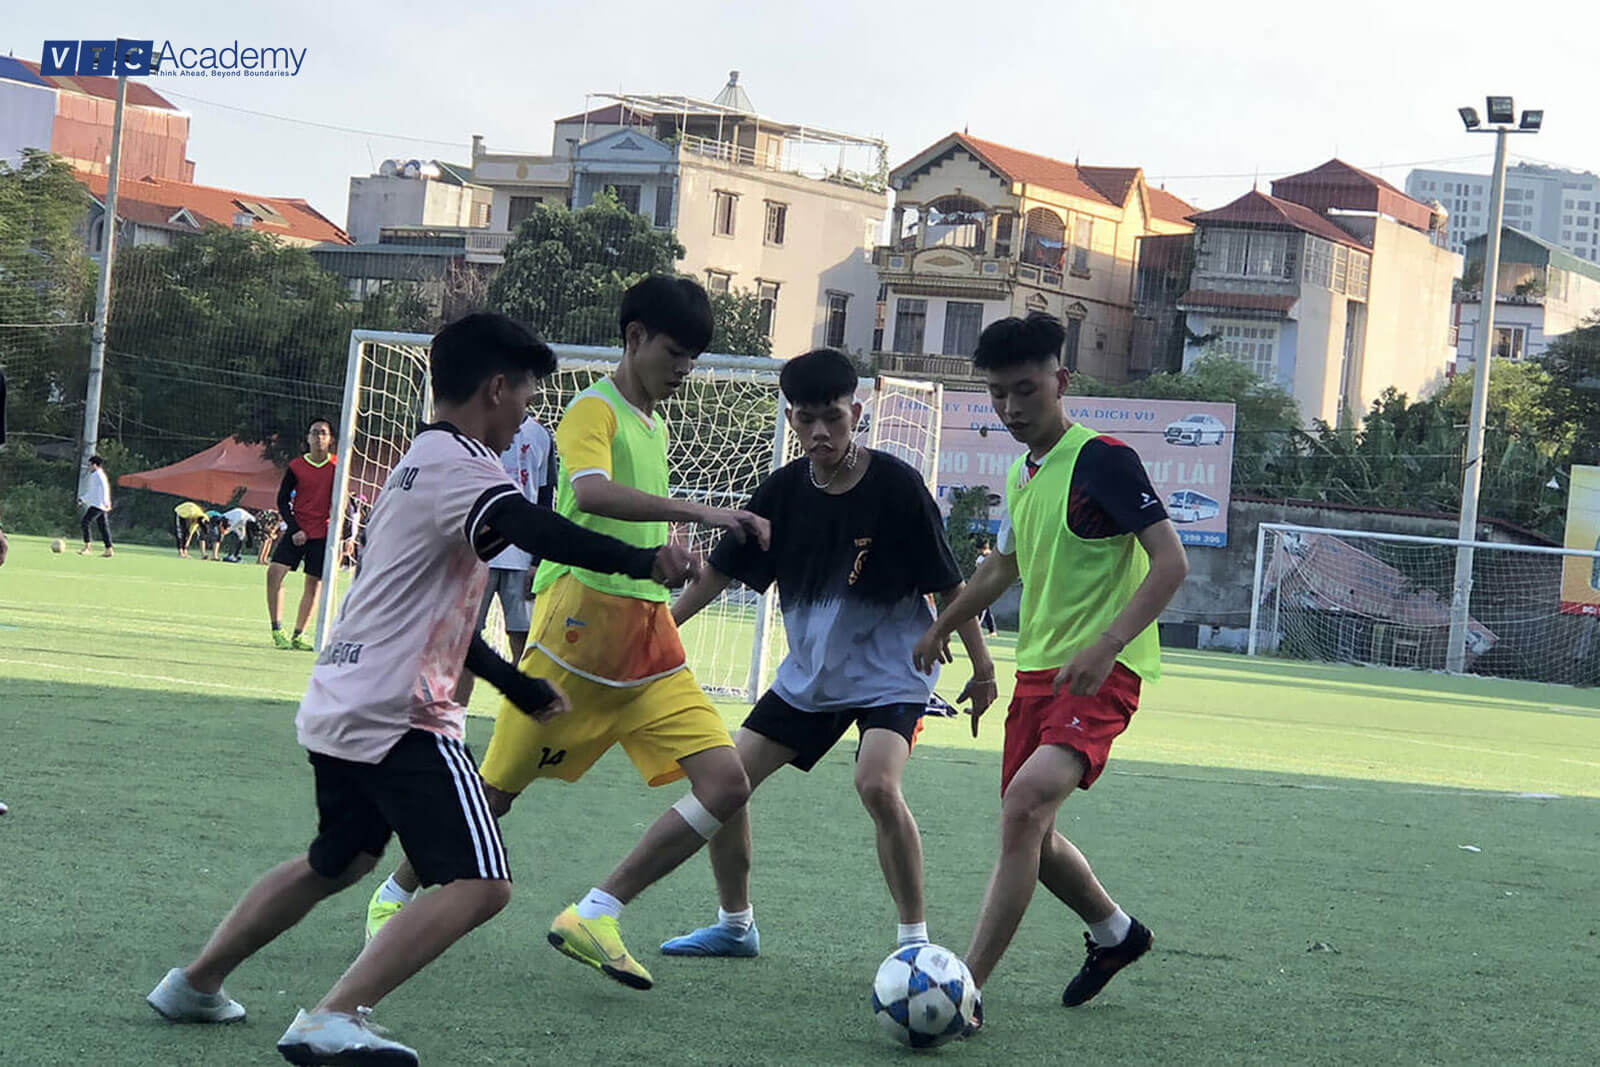 Activities of student clubs at VTC Academy Hanoi in October 2020